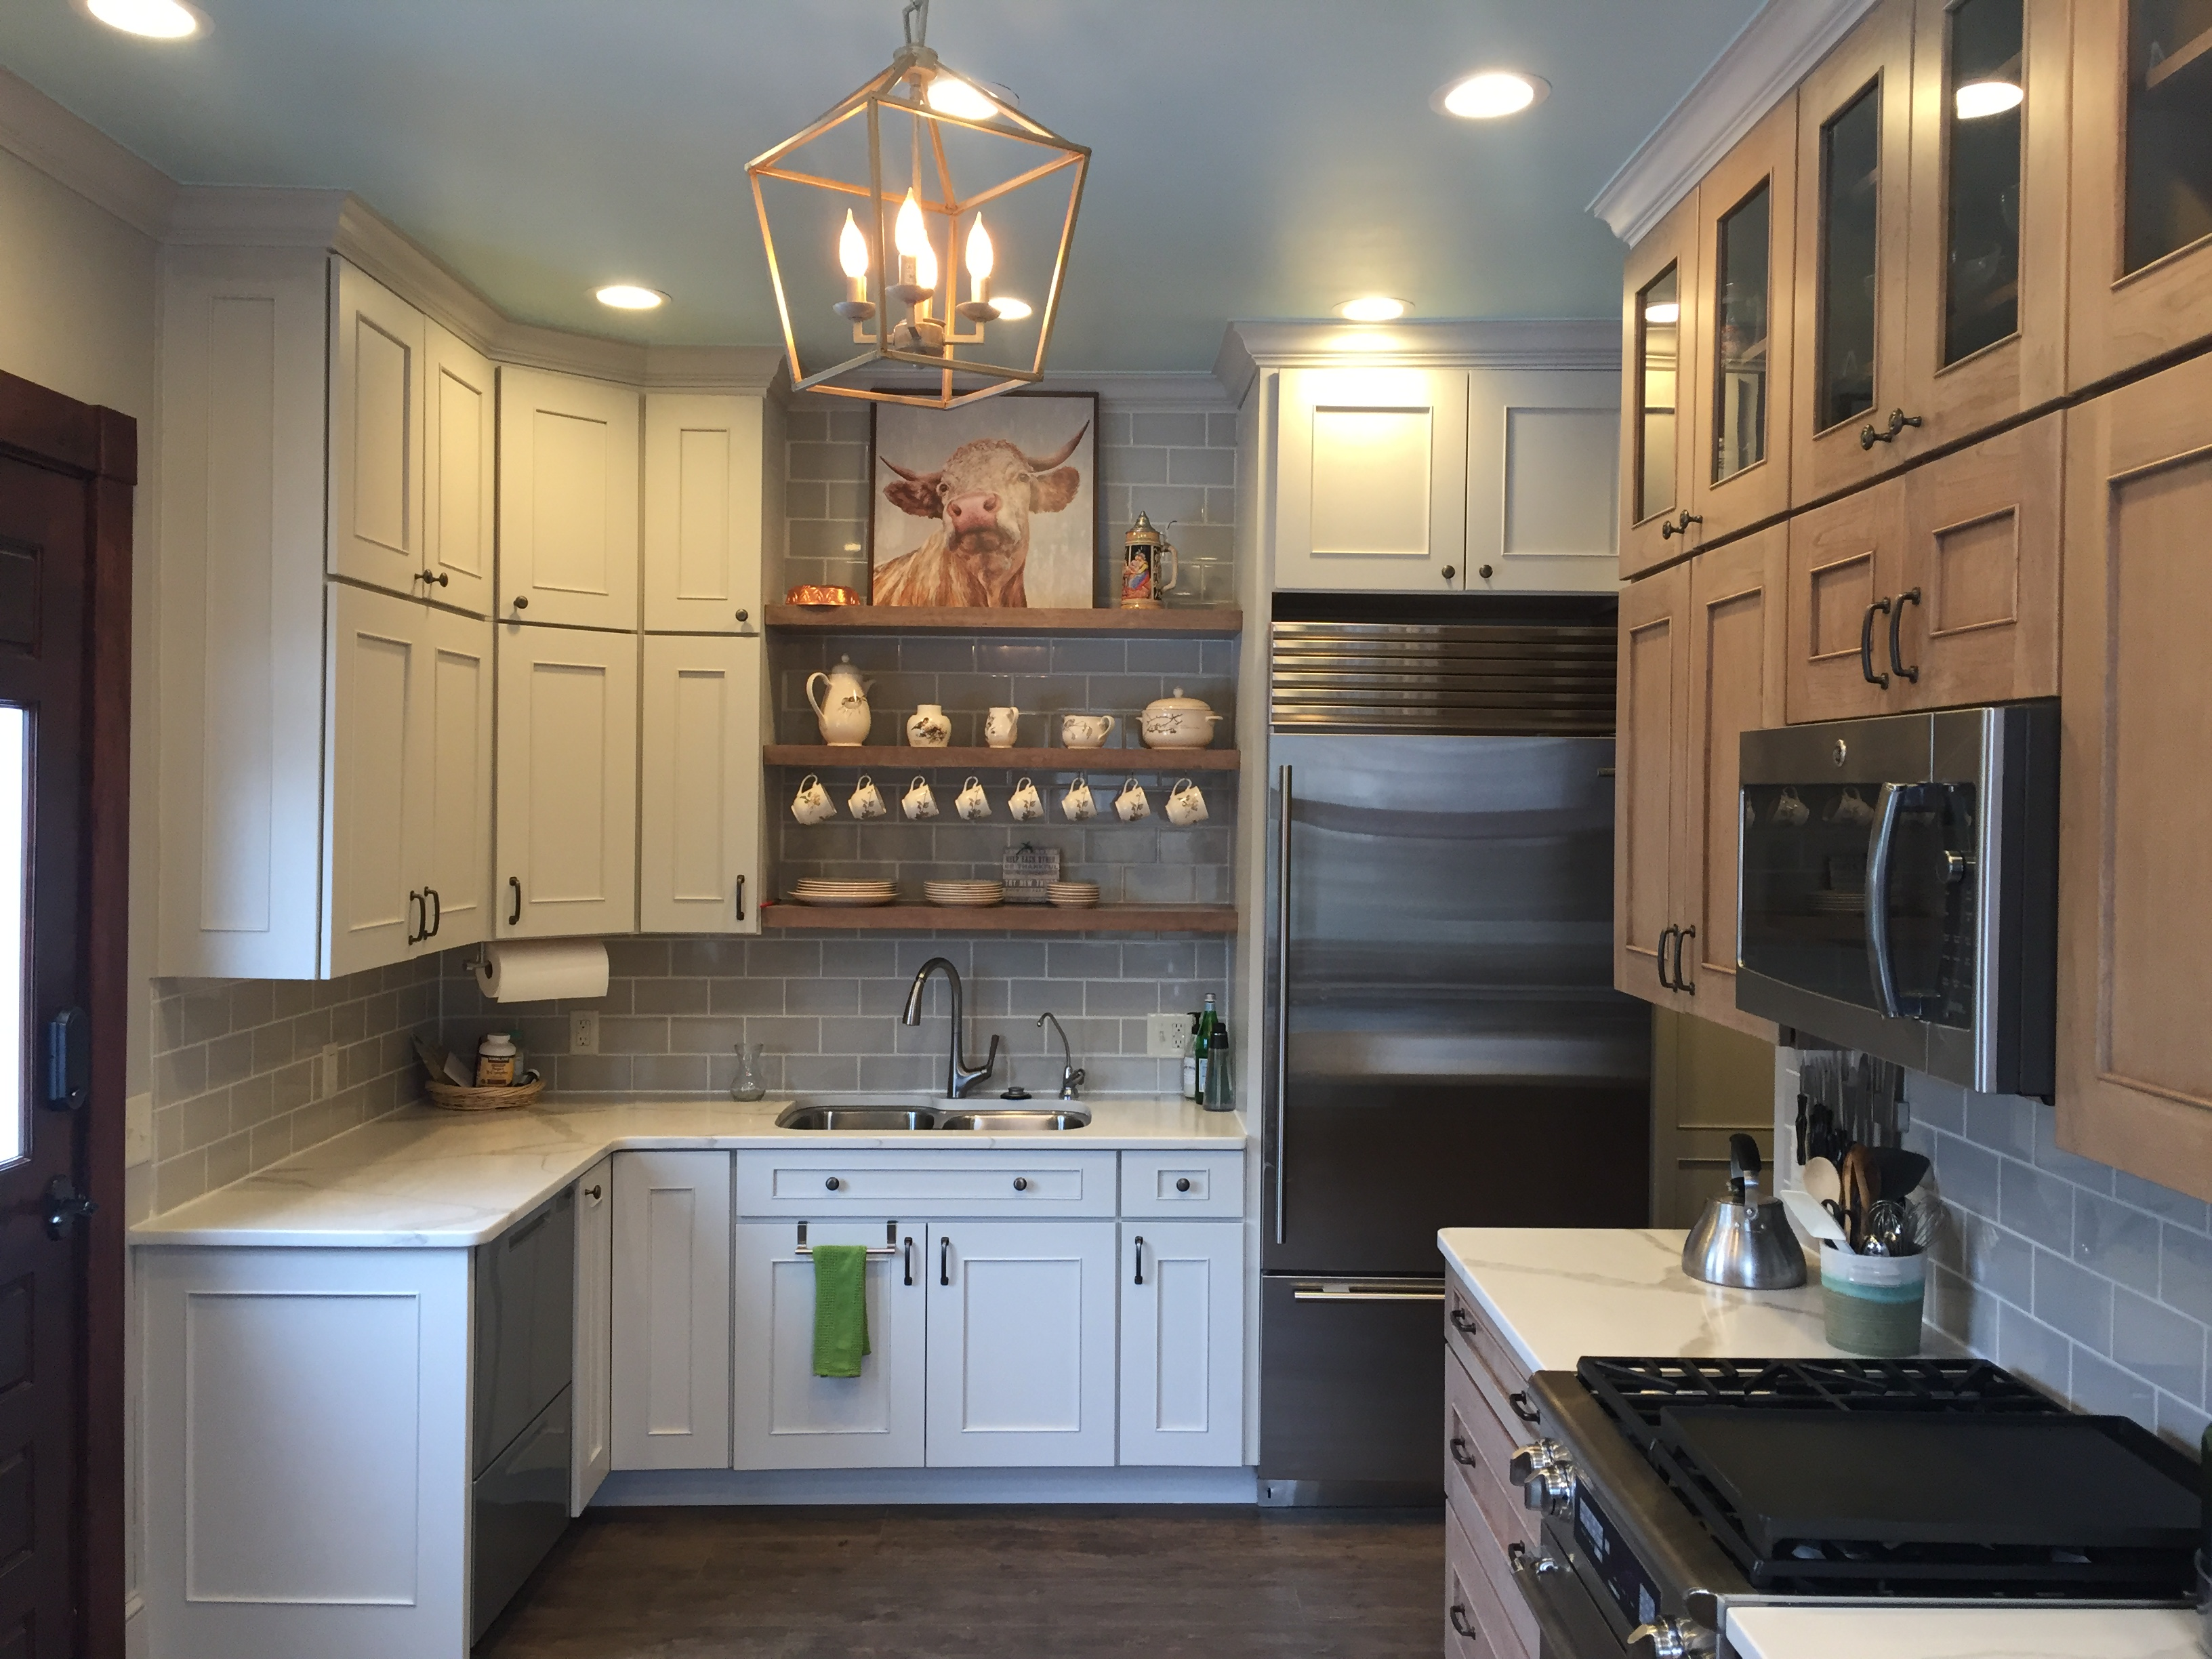 Ordinaire Discount, Wholesale Prices Kitchen Cabinets Indianapolis